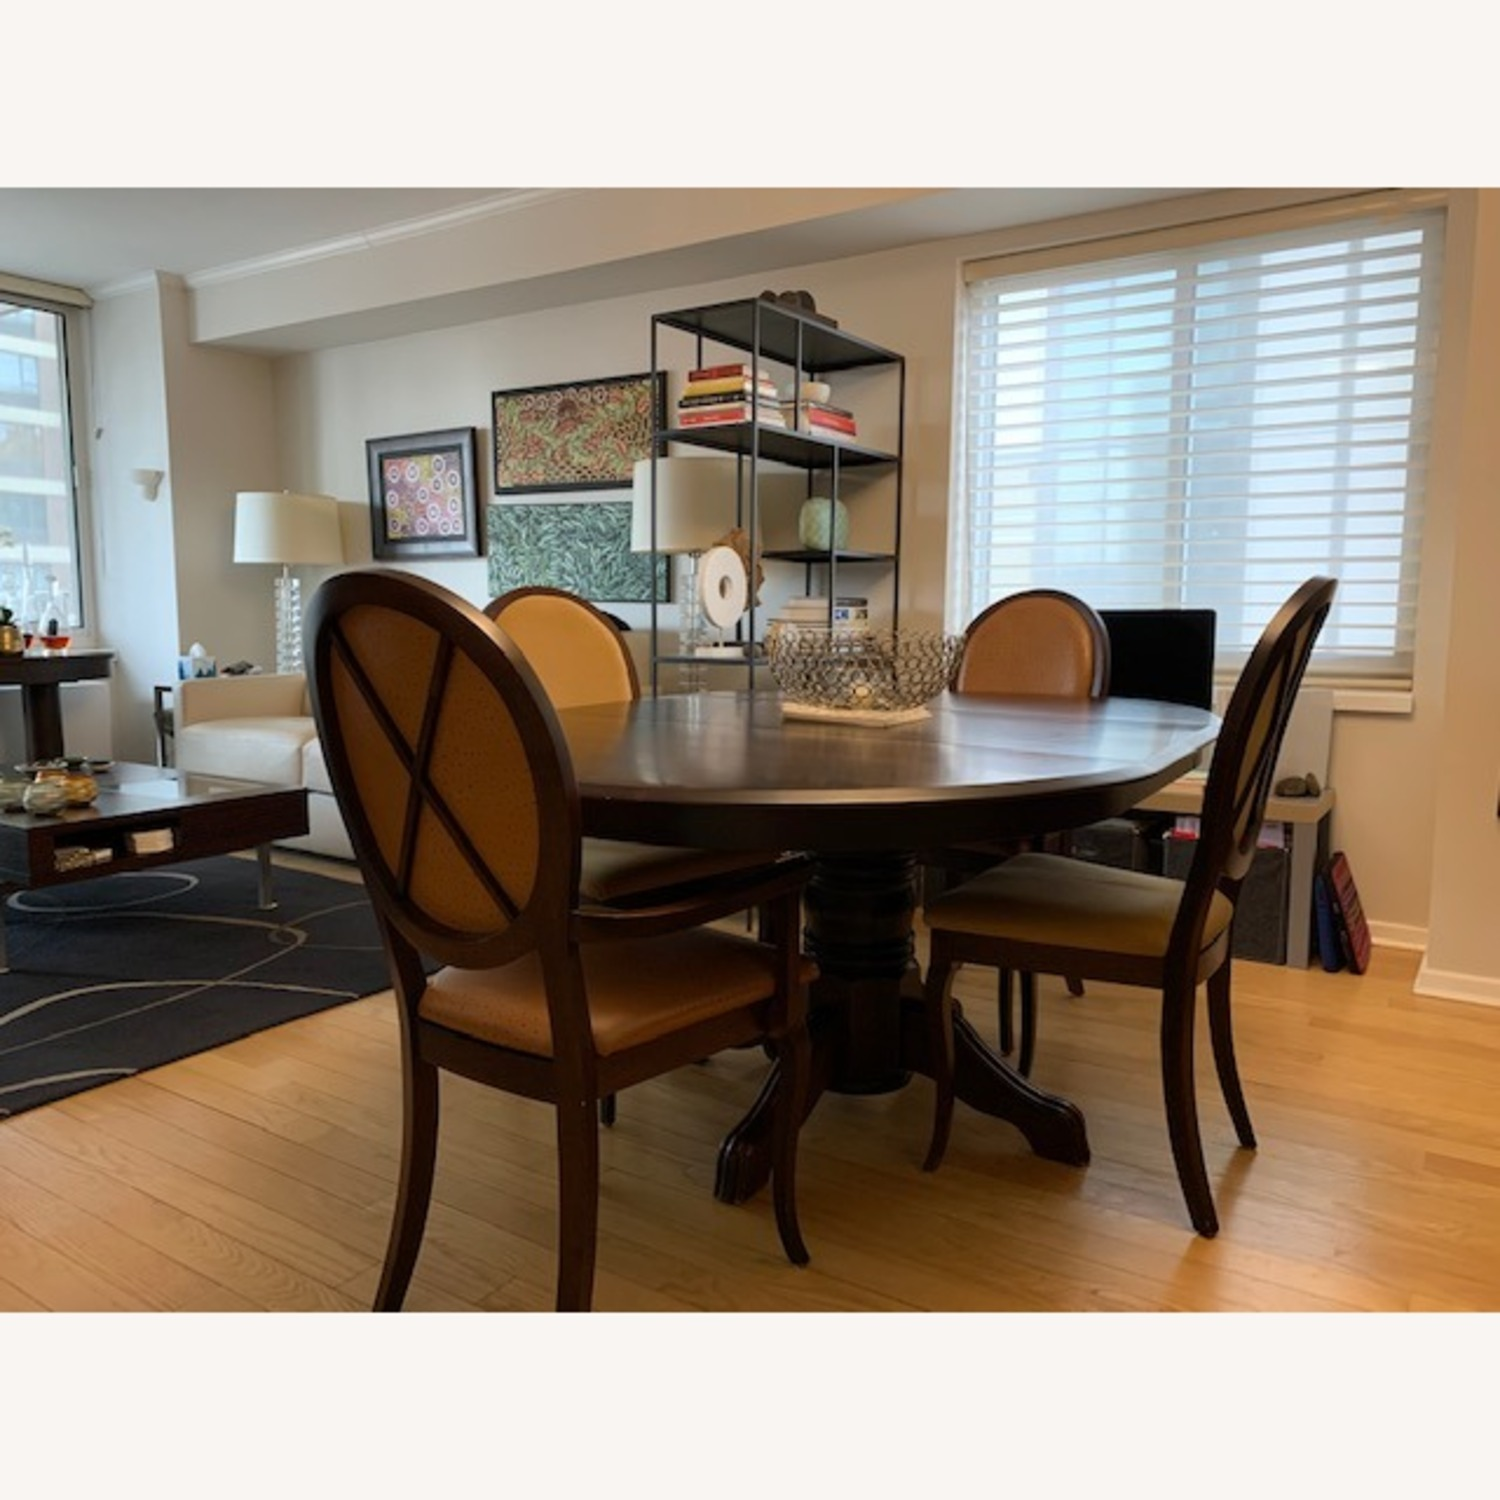 Expandable Dining Room Table w/ Six Chairs - image-1